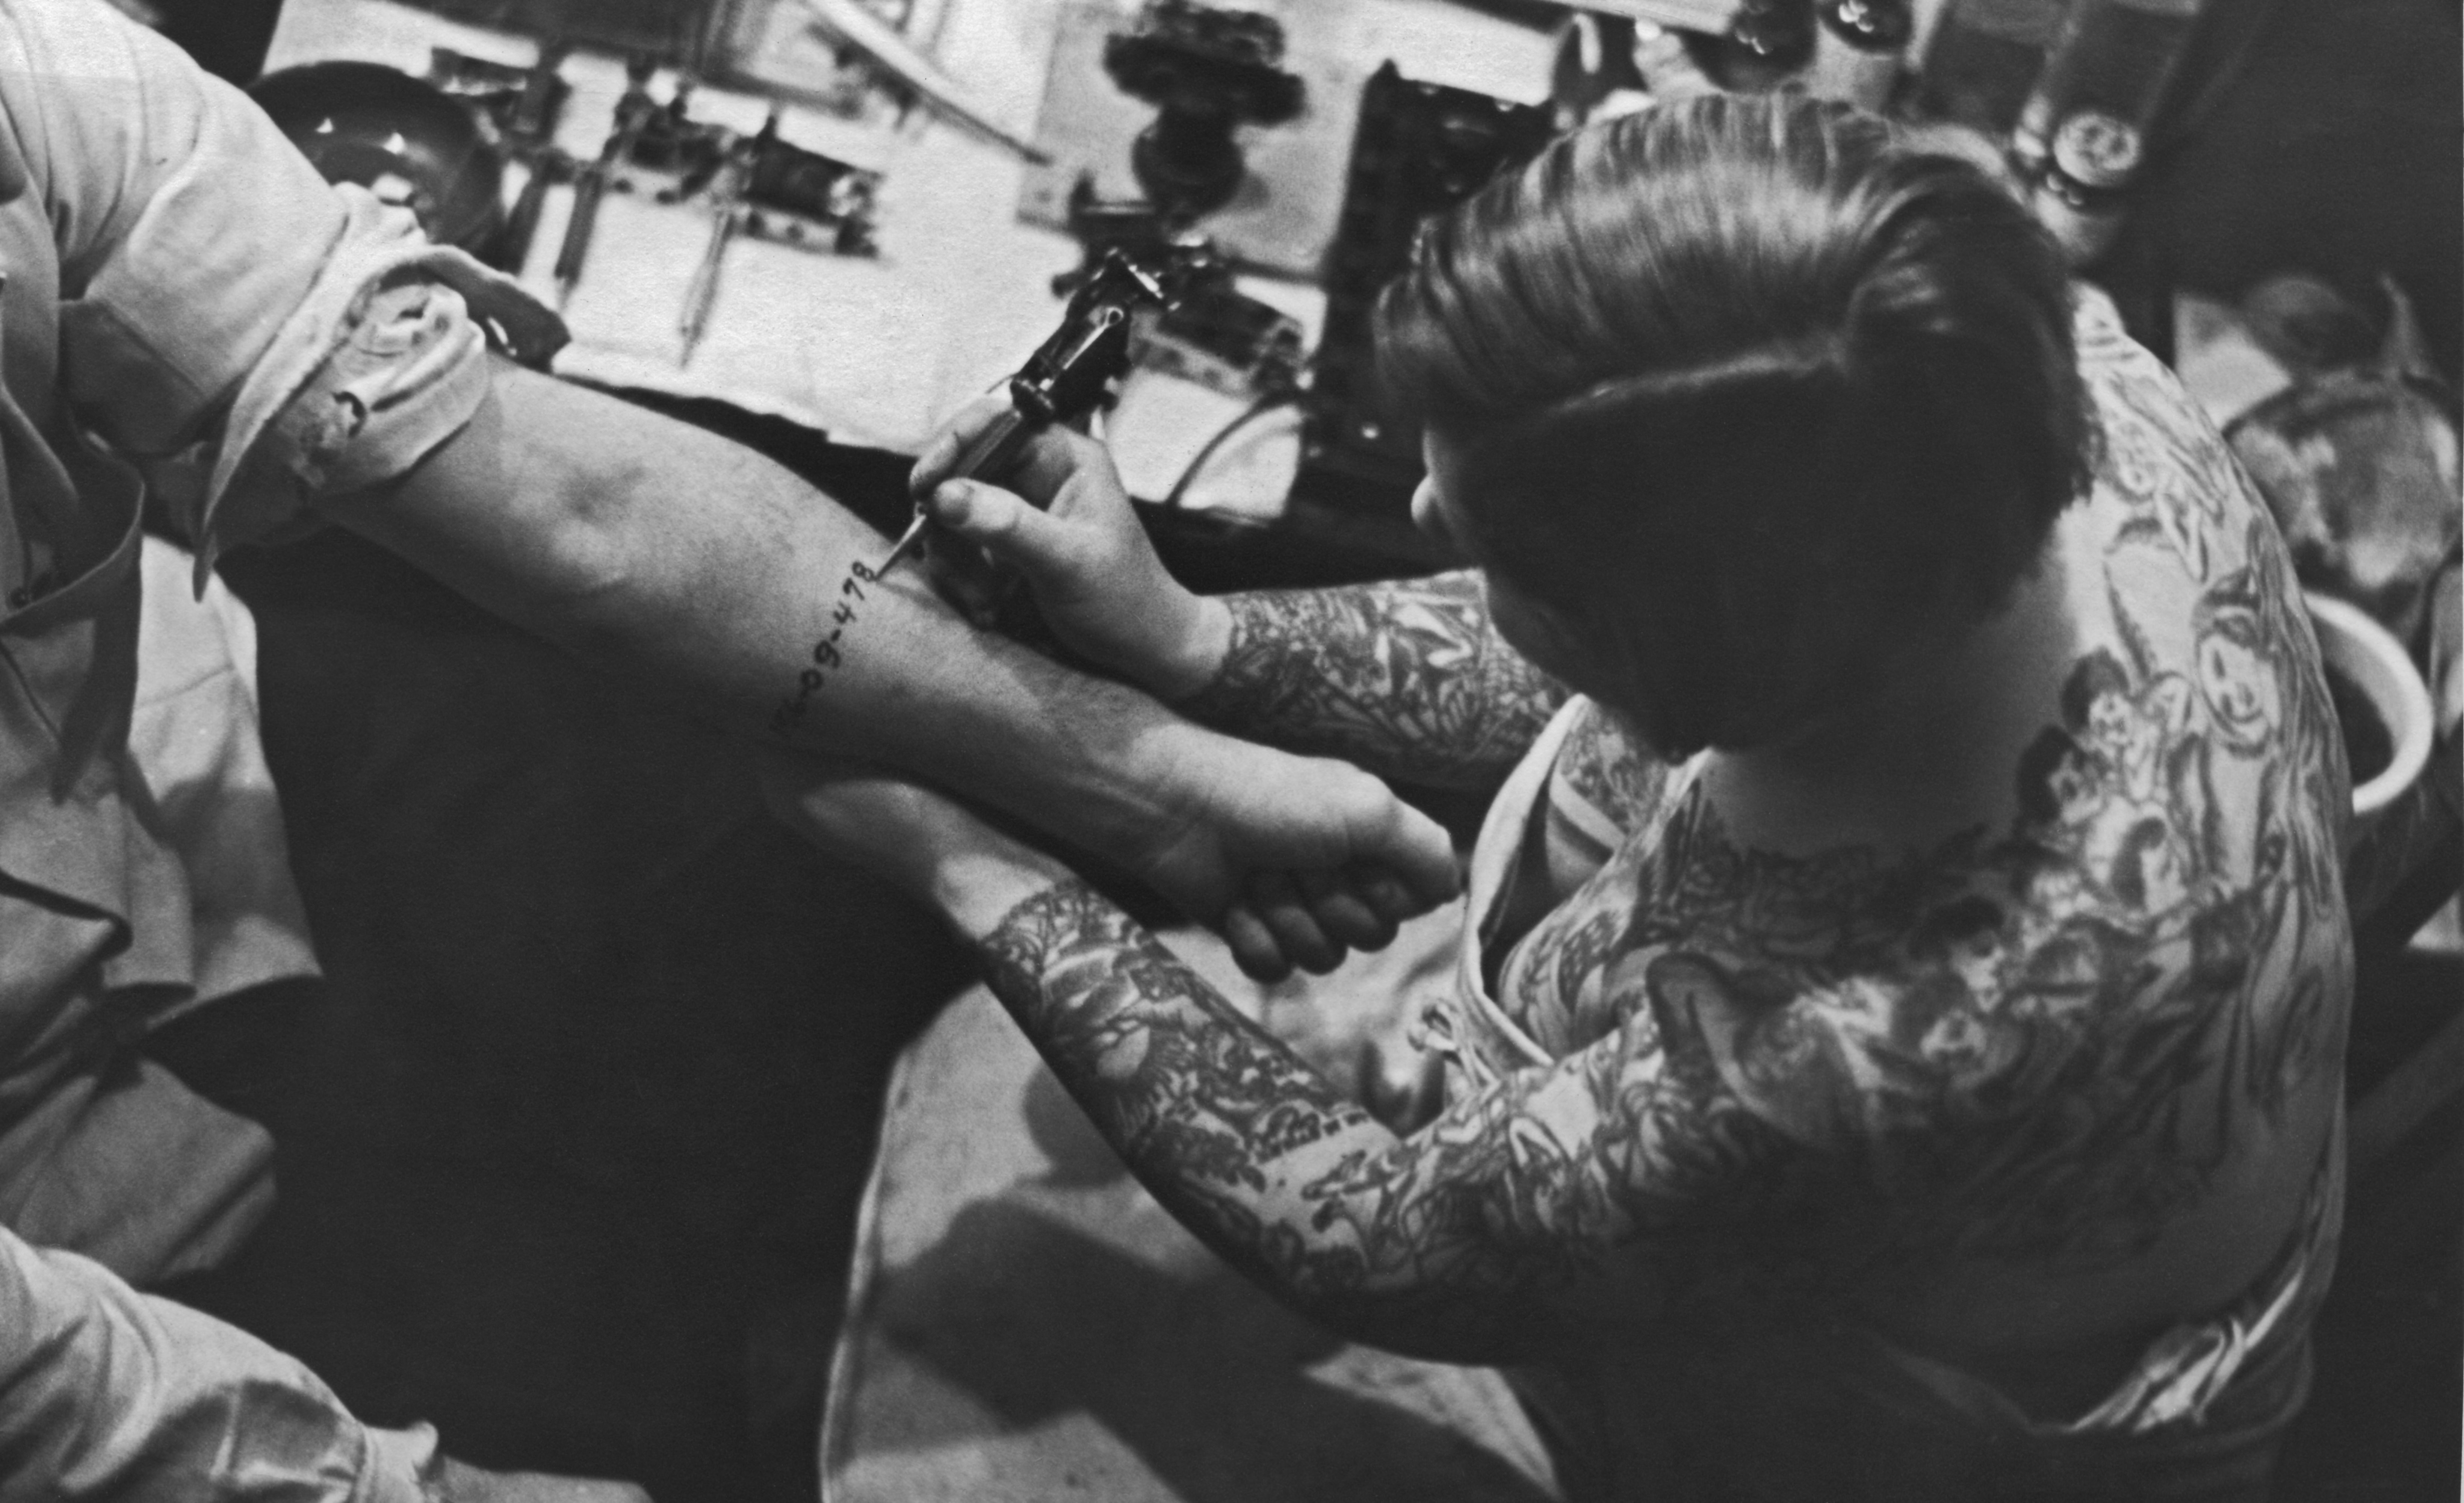 Tattoo Designs For Men Some Inspiration From Instagram